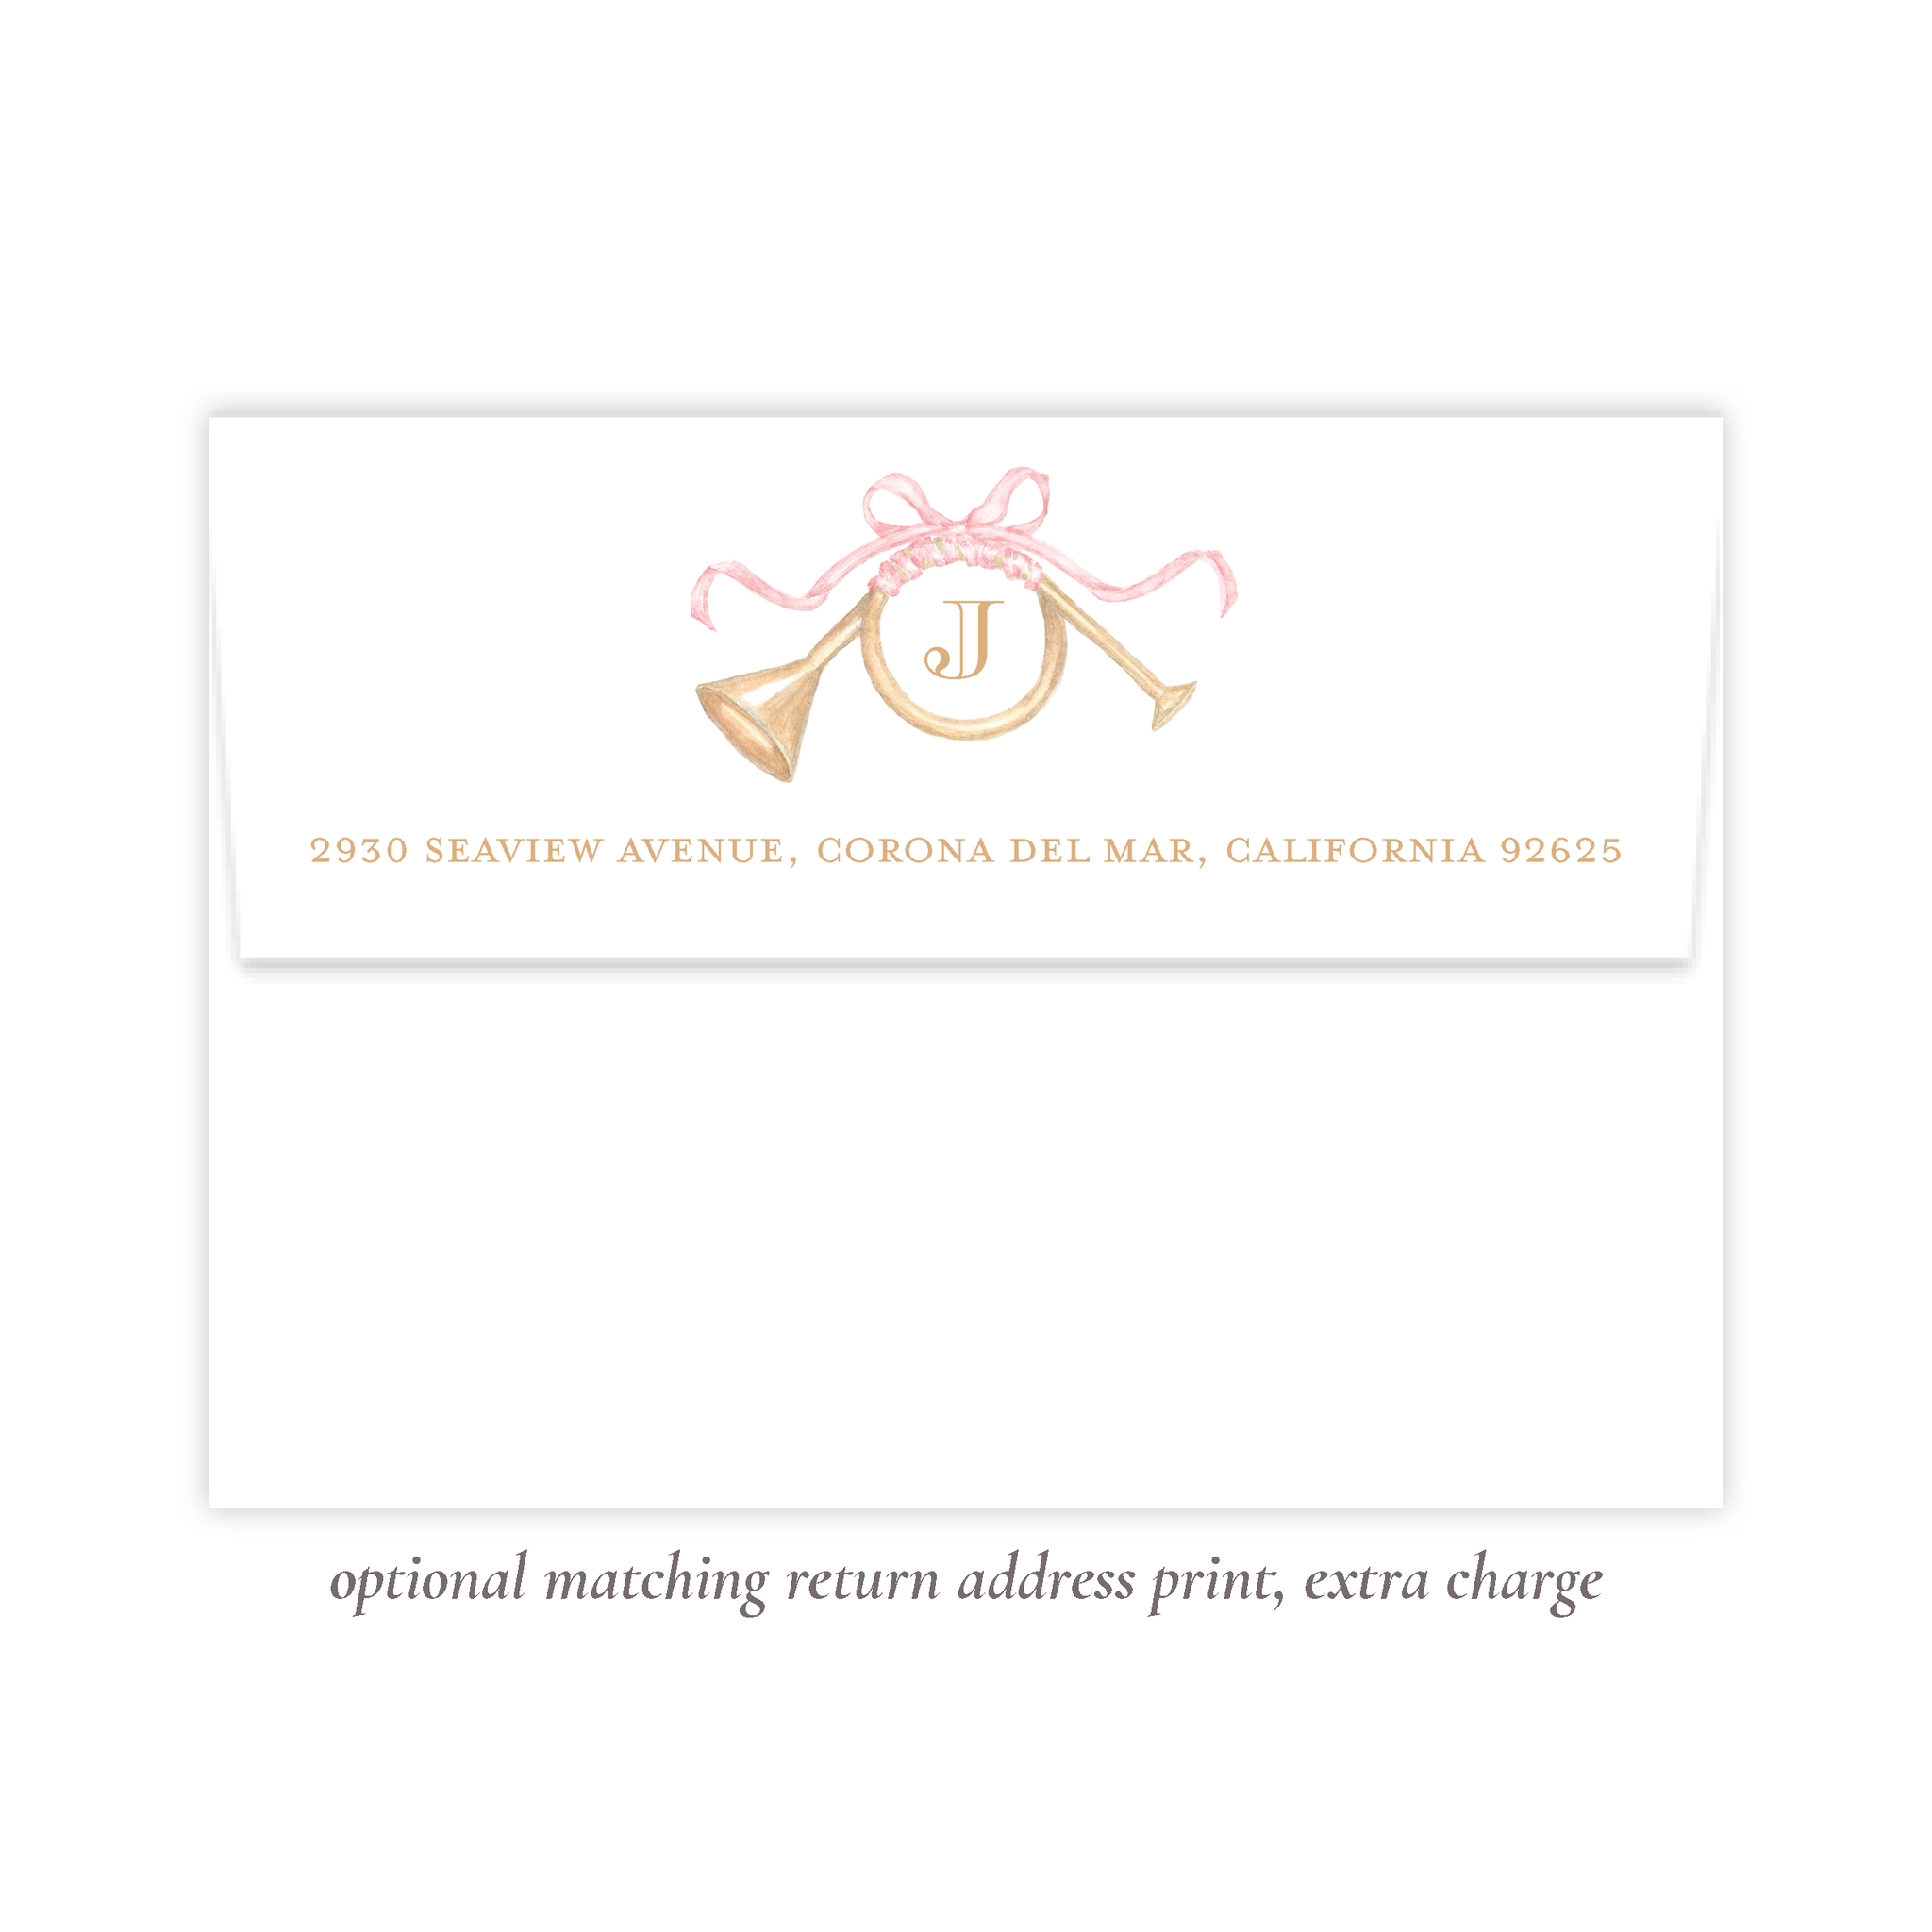 Triumphant Trumpet and Pink Bow Return Address Print